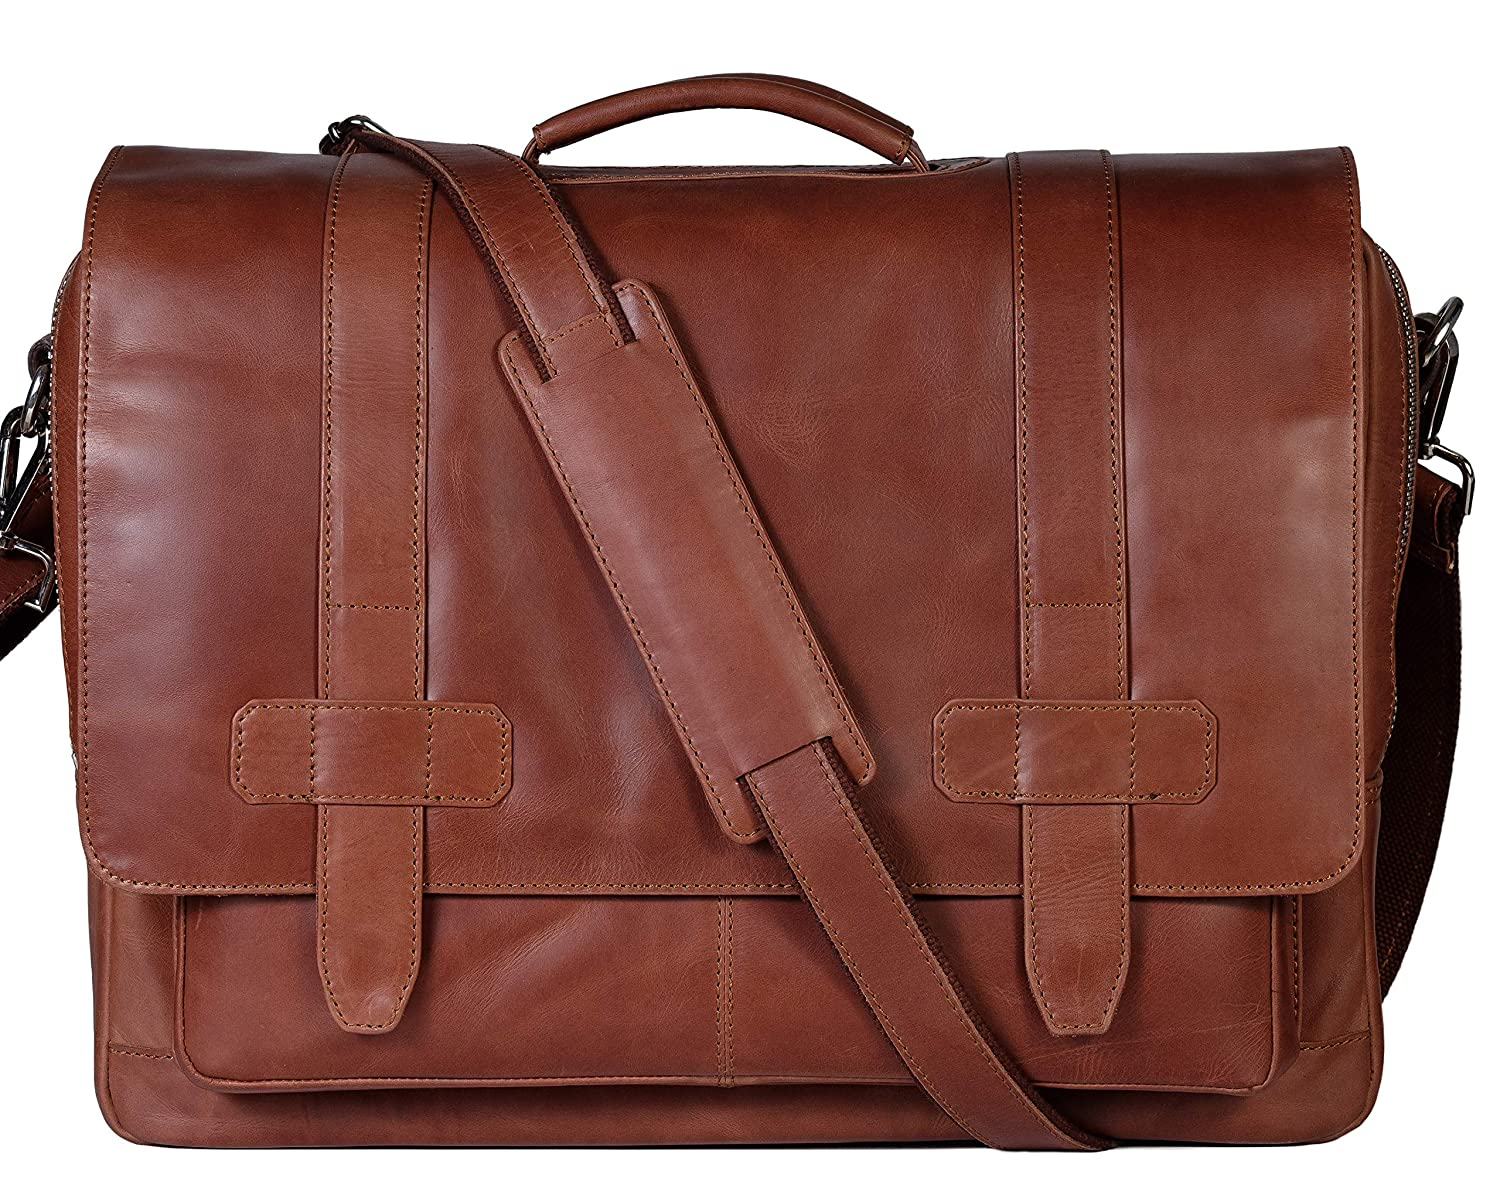 fits 15.4 inch Laptop 16 inch by 12 inch by 4 inch Full-Grain Leather Messenger Laptop Bag//Briefcase for Men Chestnut Brown Adjustable Strap Logan by Ladderback